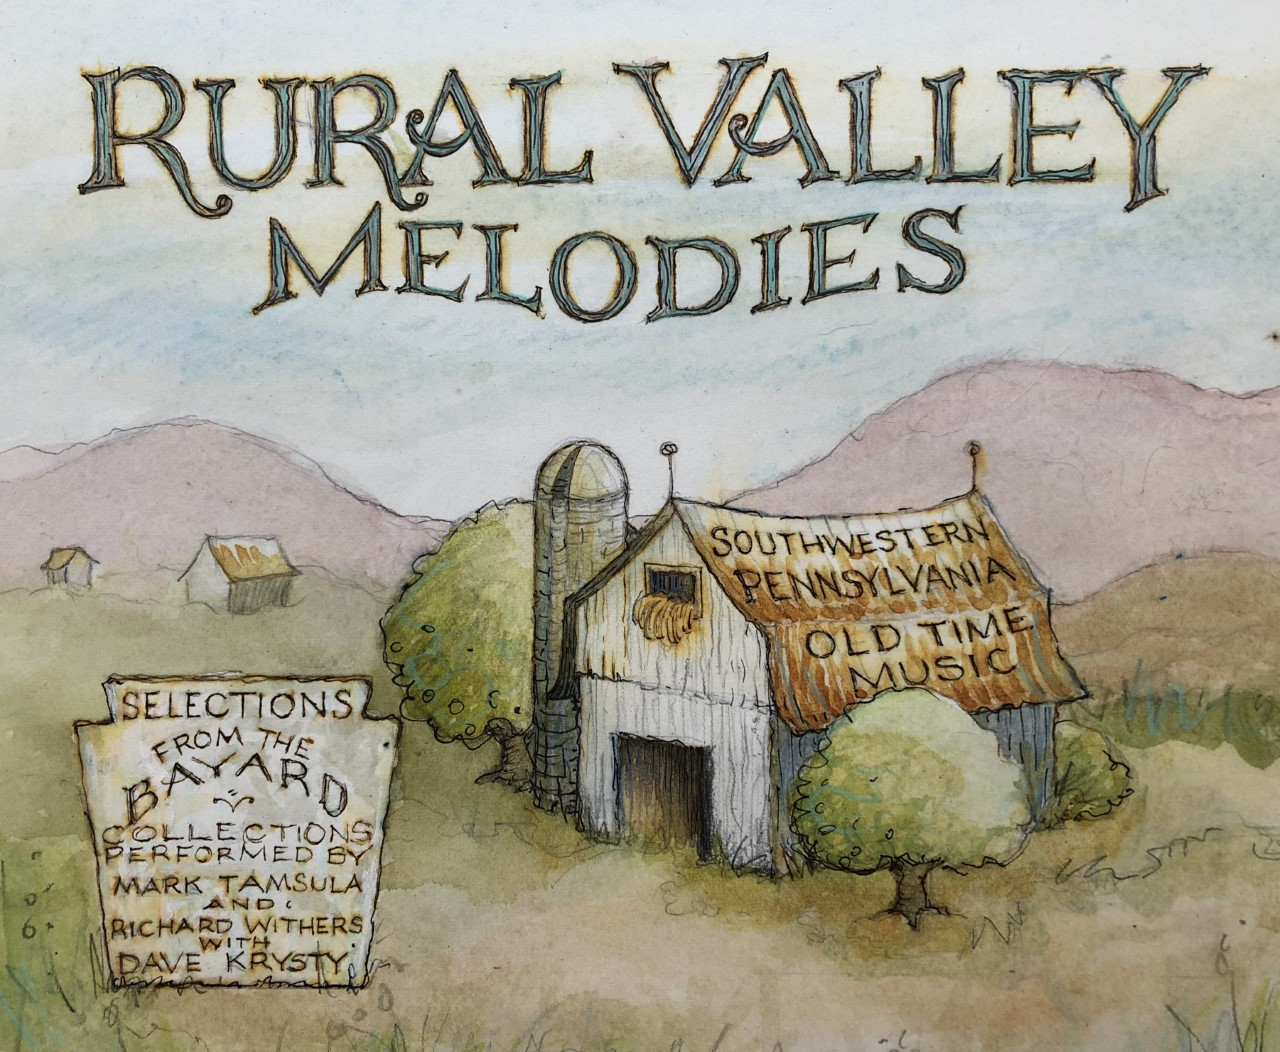 Rural Valley melodies